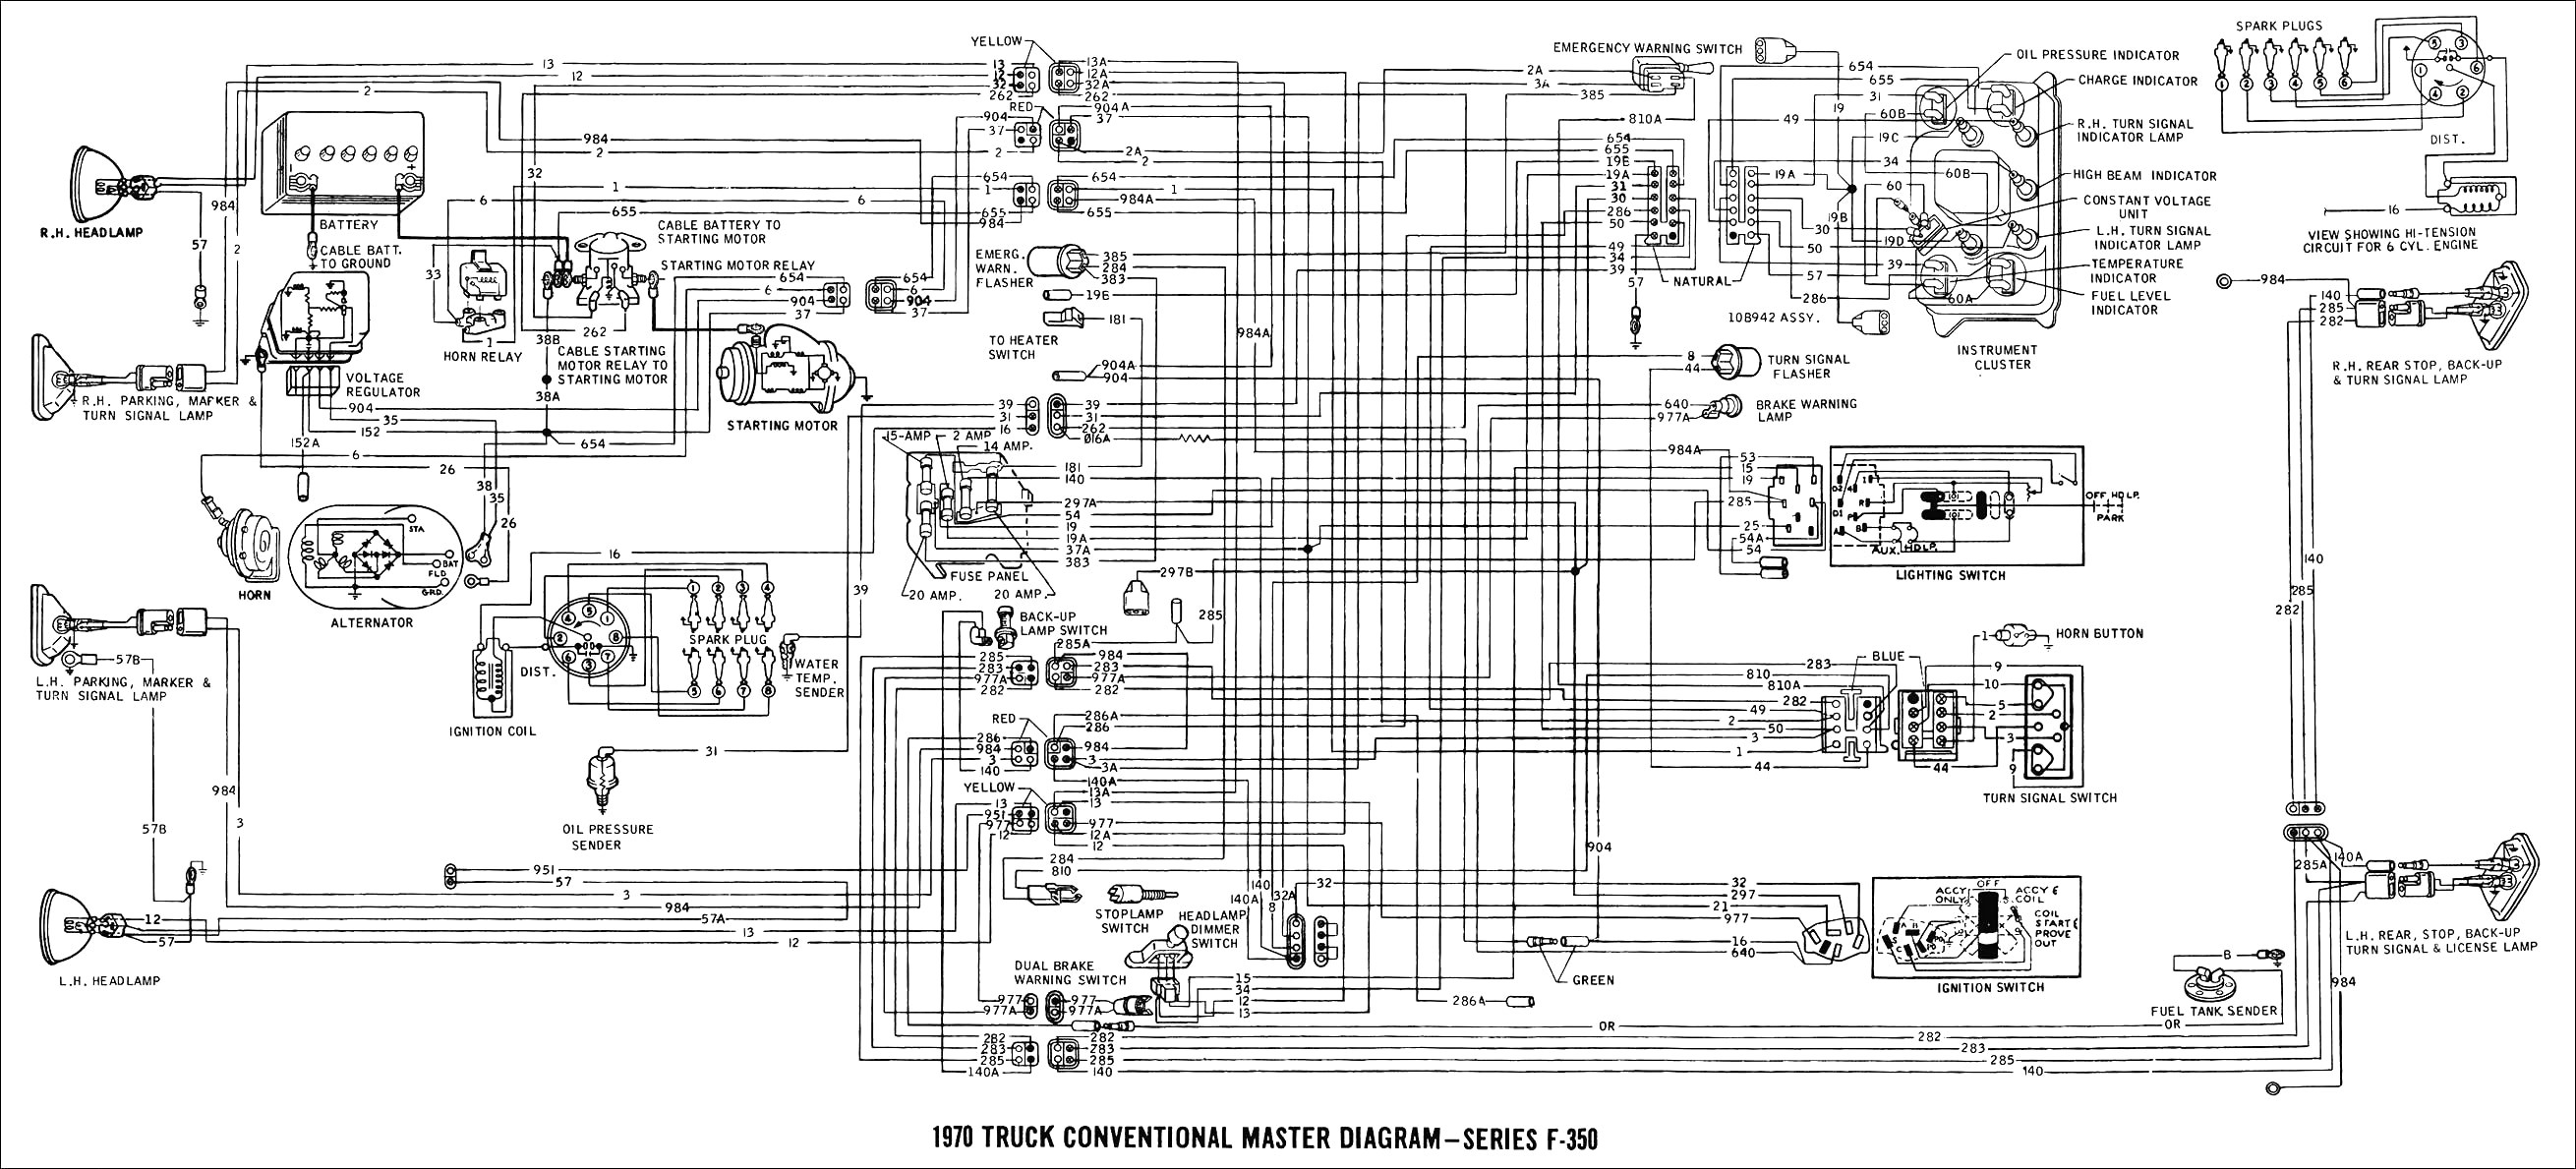 1996 Ford Ranger 40 Engine Diagram Trusted Wiring 2005 Explorer 4 0 V6 2003 Residential Electrical Symbols U2022 1991